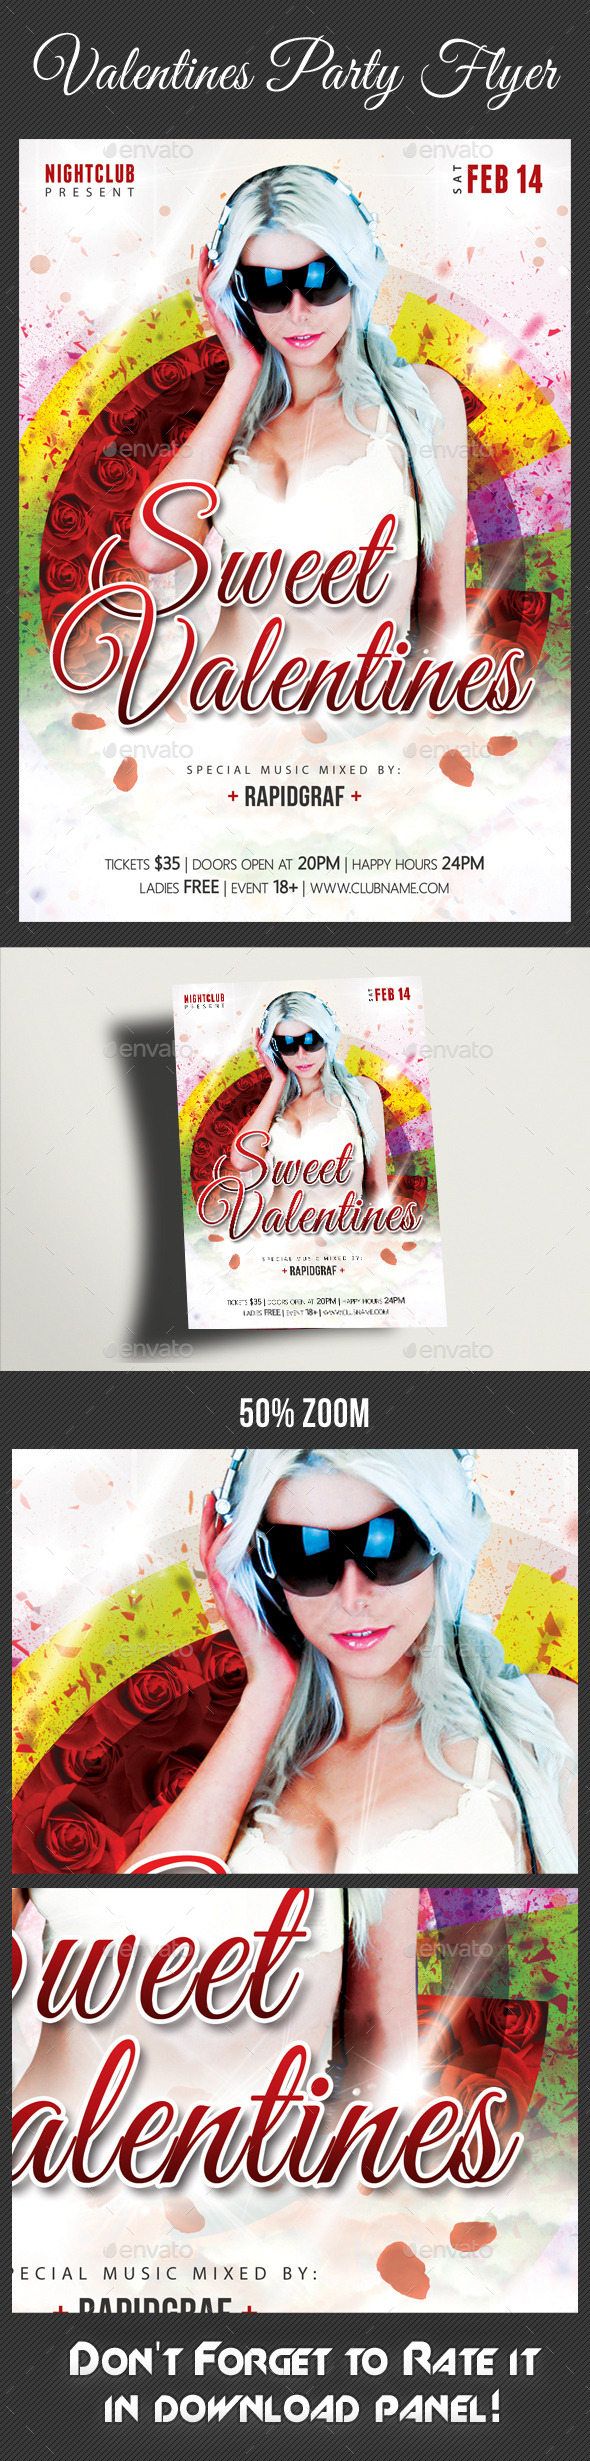 Valentines Day Party Flyer Template 02 - Clubs & Parties Events